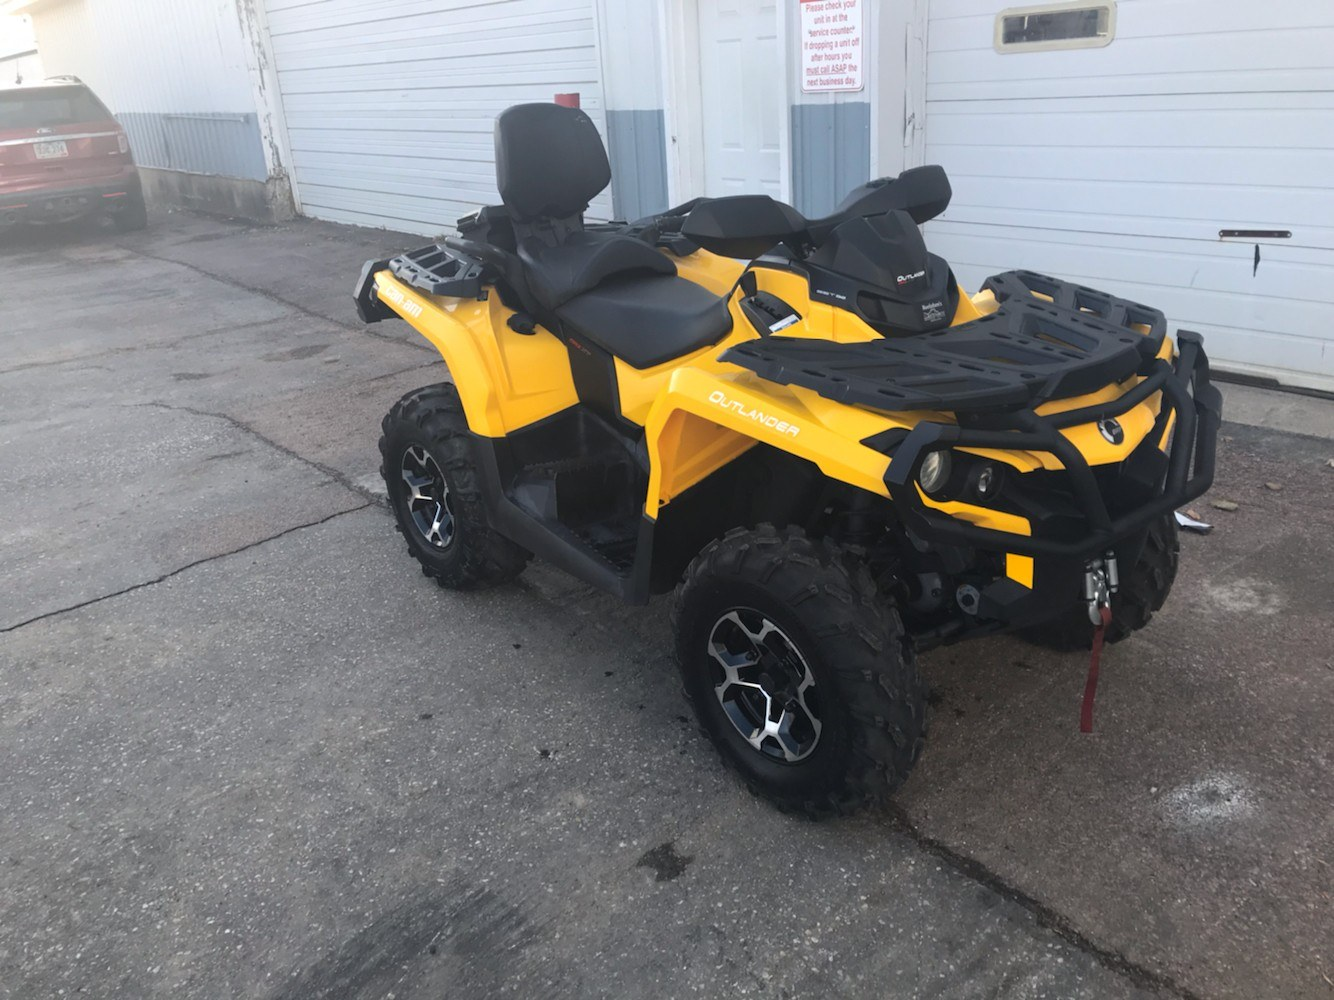 2016 Can-Am Outlander MAX XT 570 in Toronto, South Dakota - Photo 2